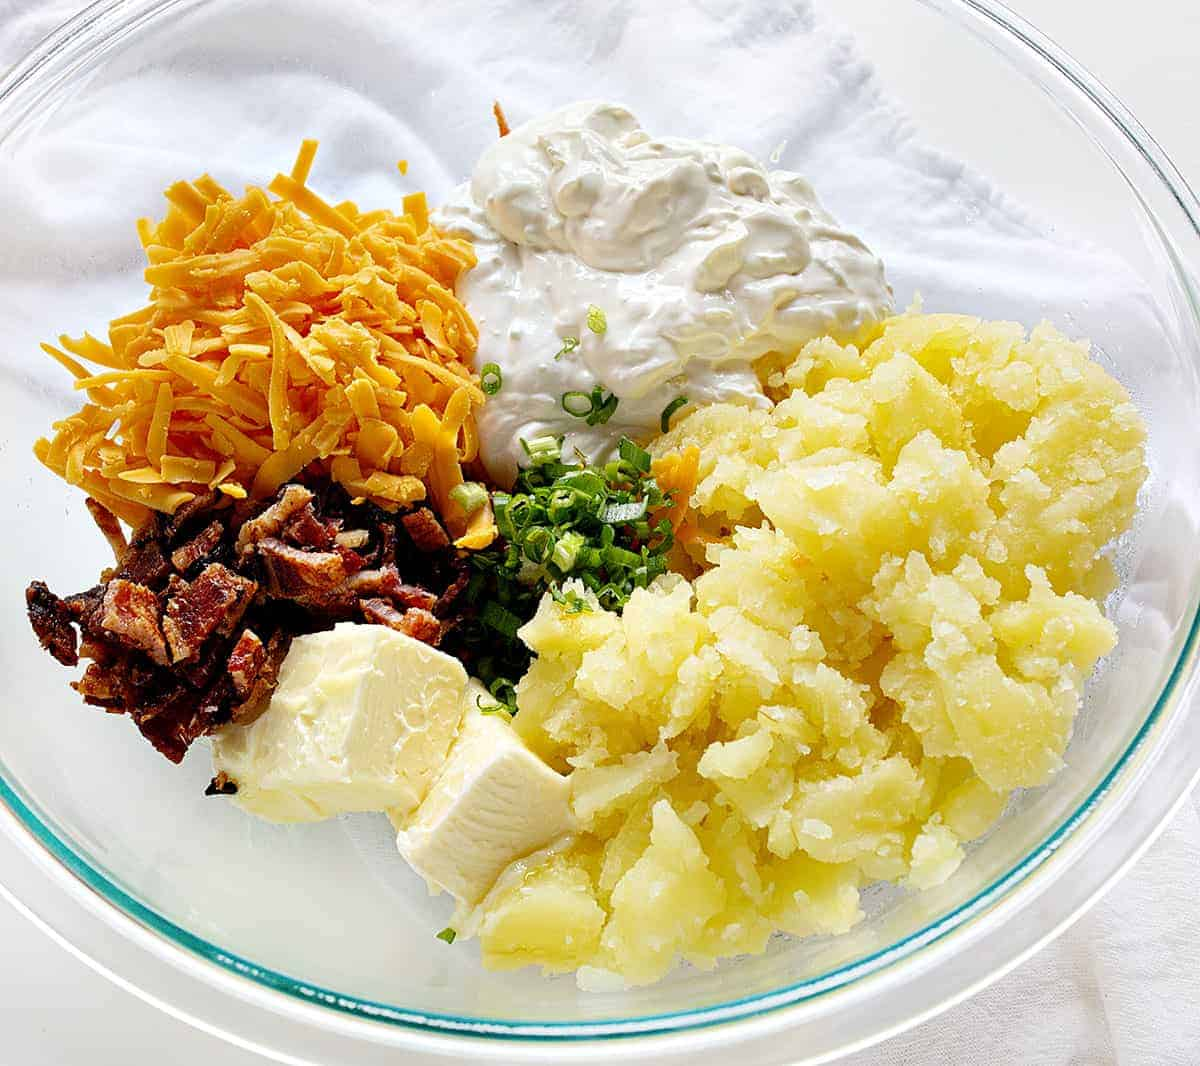 Ingredients for Twice Baked Potatoes Recipe